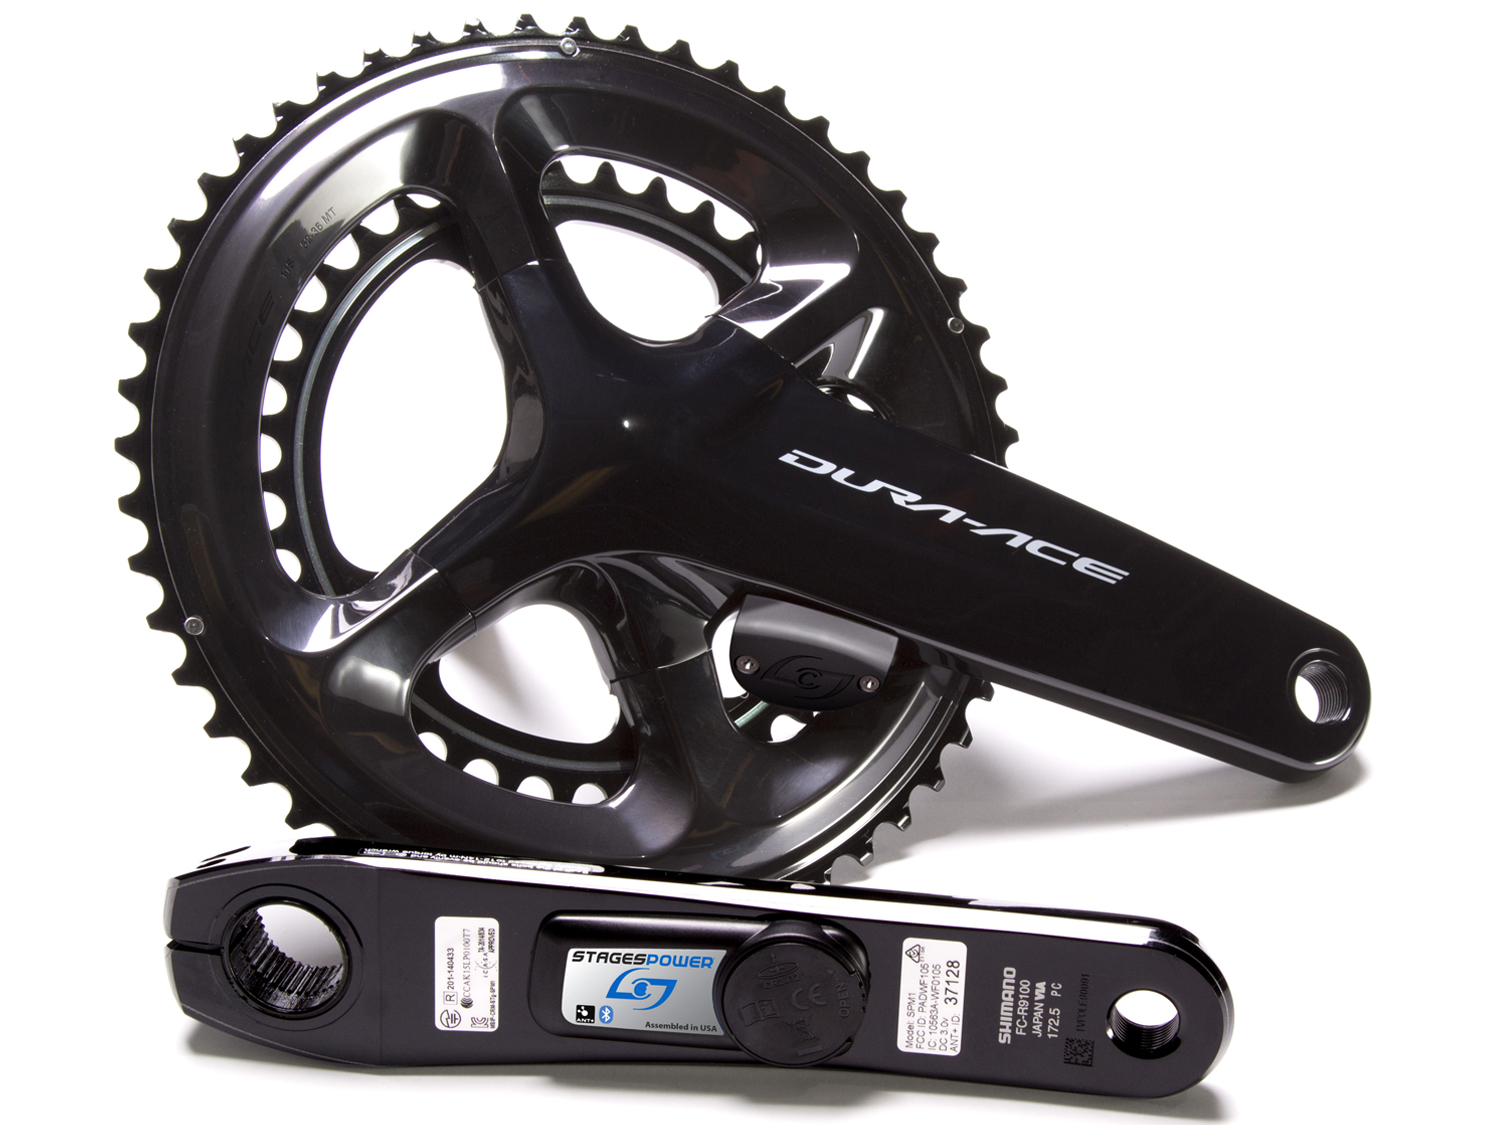 Stages Power L/R Shimano Dura-Ace 9100